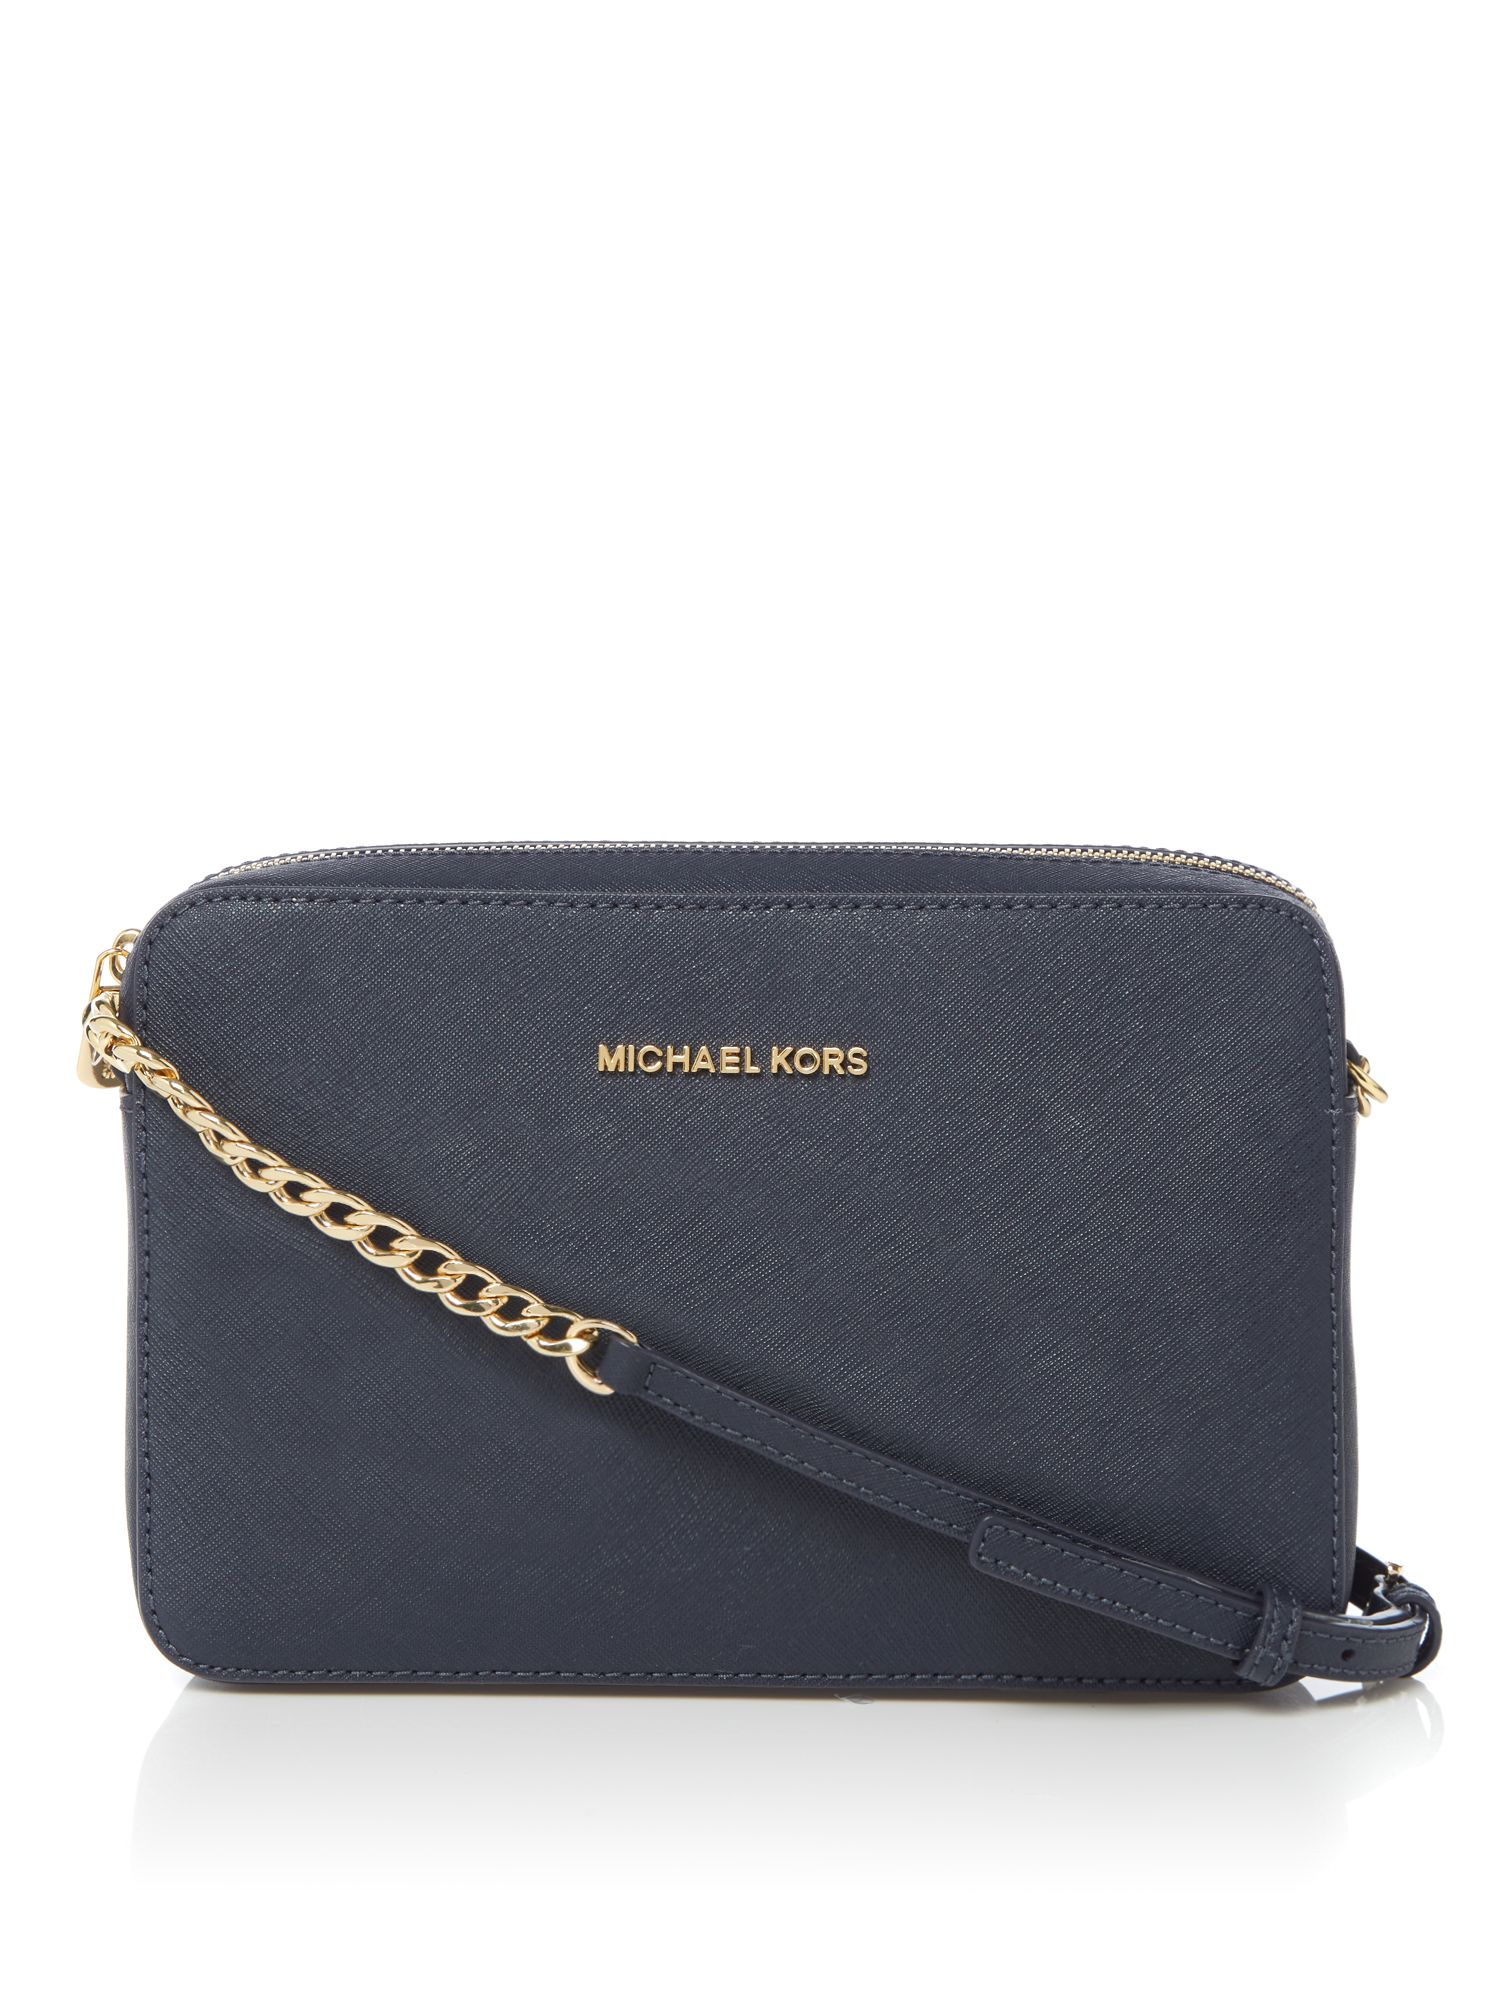 michael kors handbags shop handbags house of fraser rh houseoffraser co uk